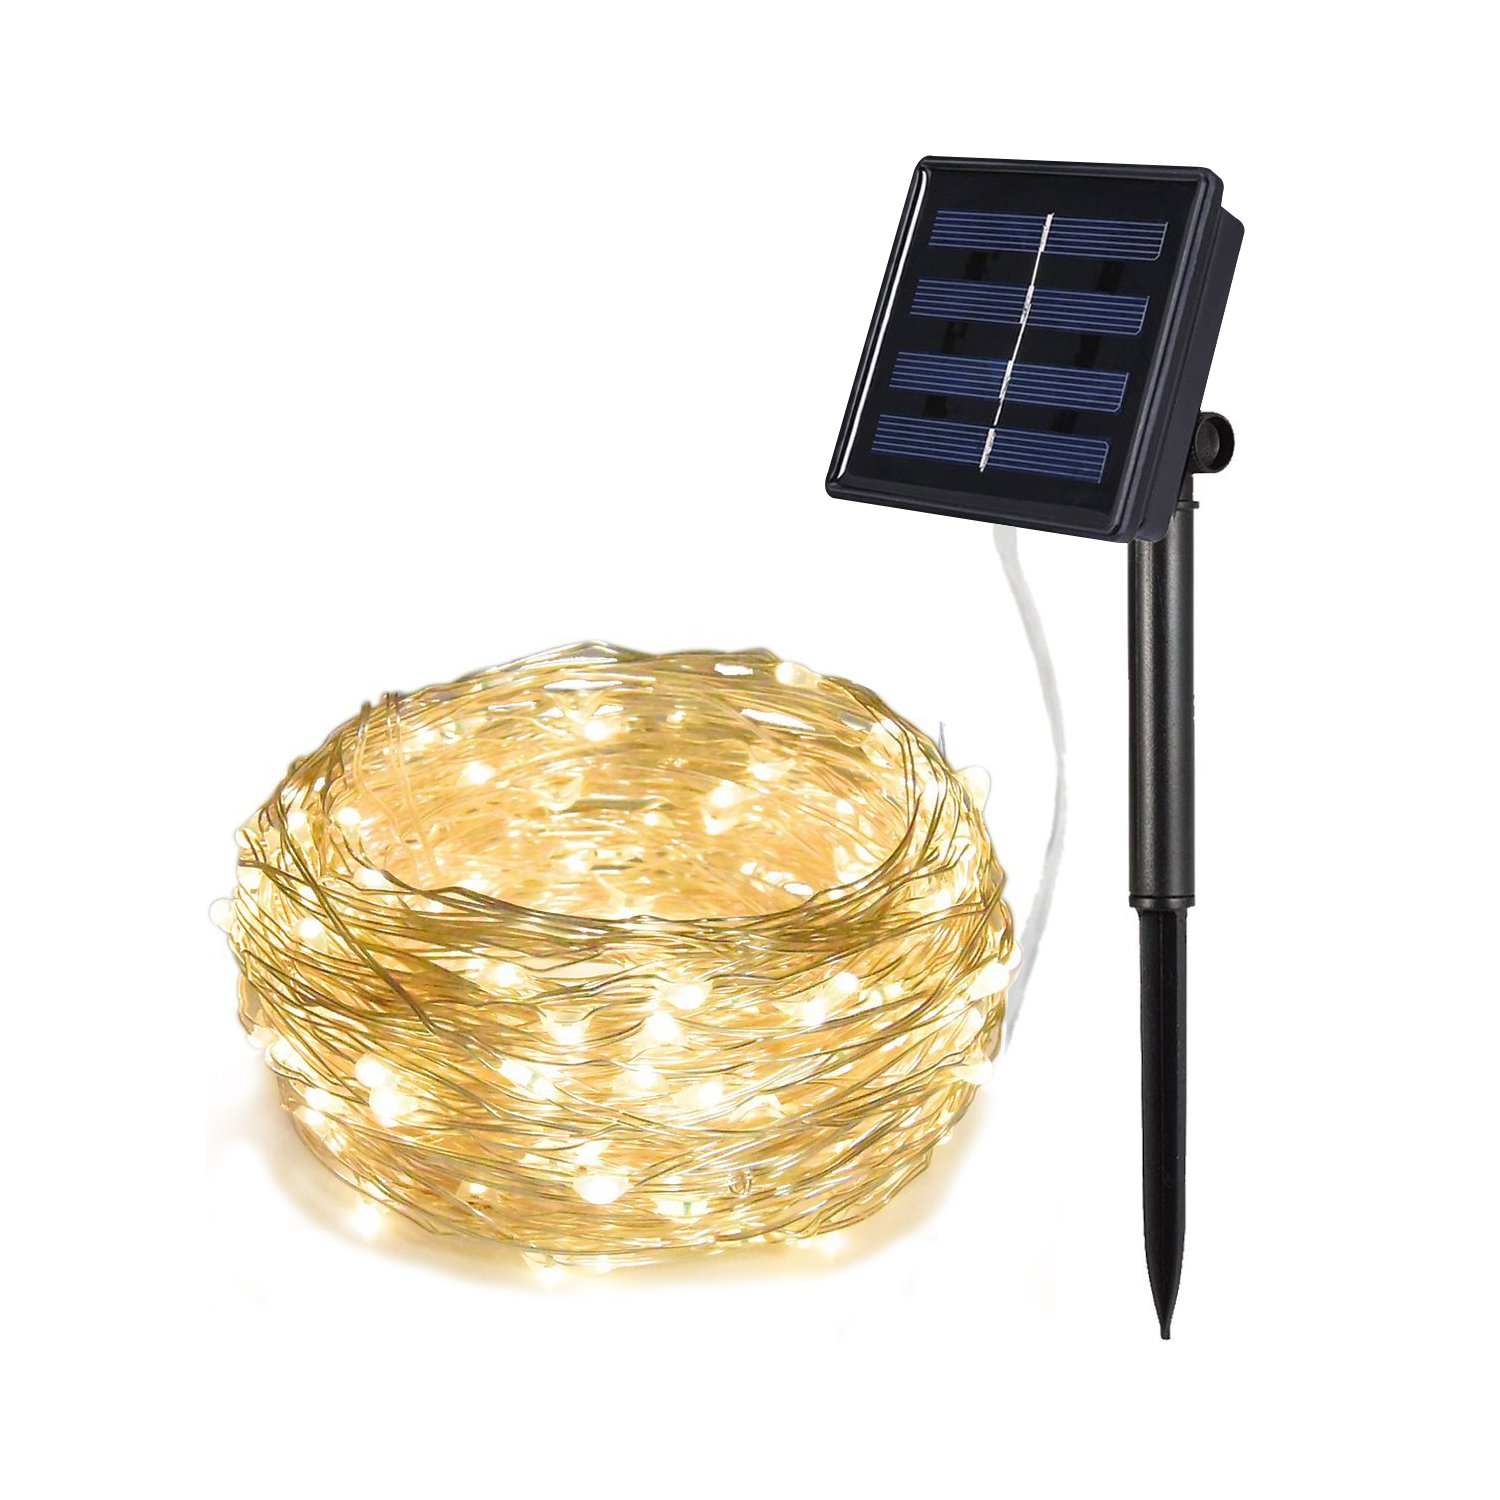 Relohas Solar String lights, 33ft 100 LED Silver Wire Outdoor String Waterproof Christmas Lights 8 Modes Solar Powered Fairy Lights for Home,Gardens, Patios,weddings and Parties(Warm White)